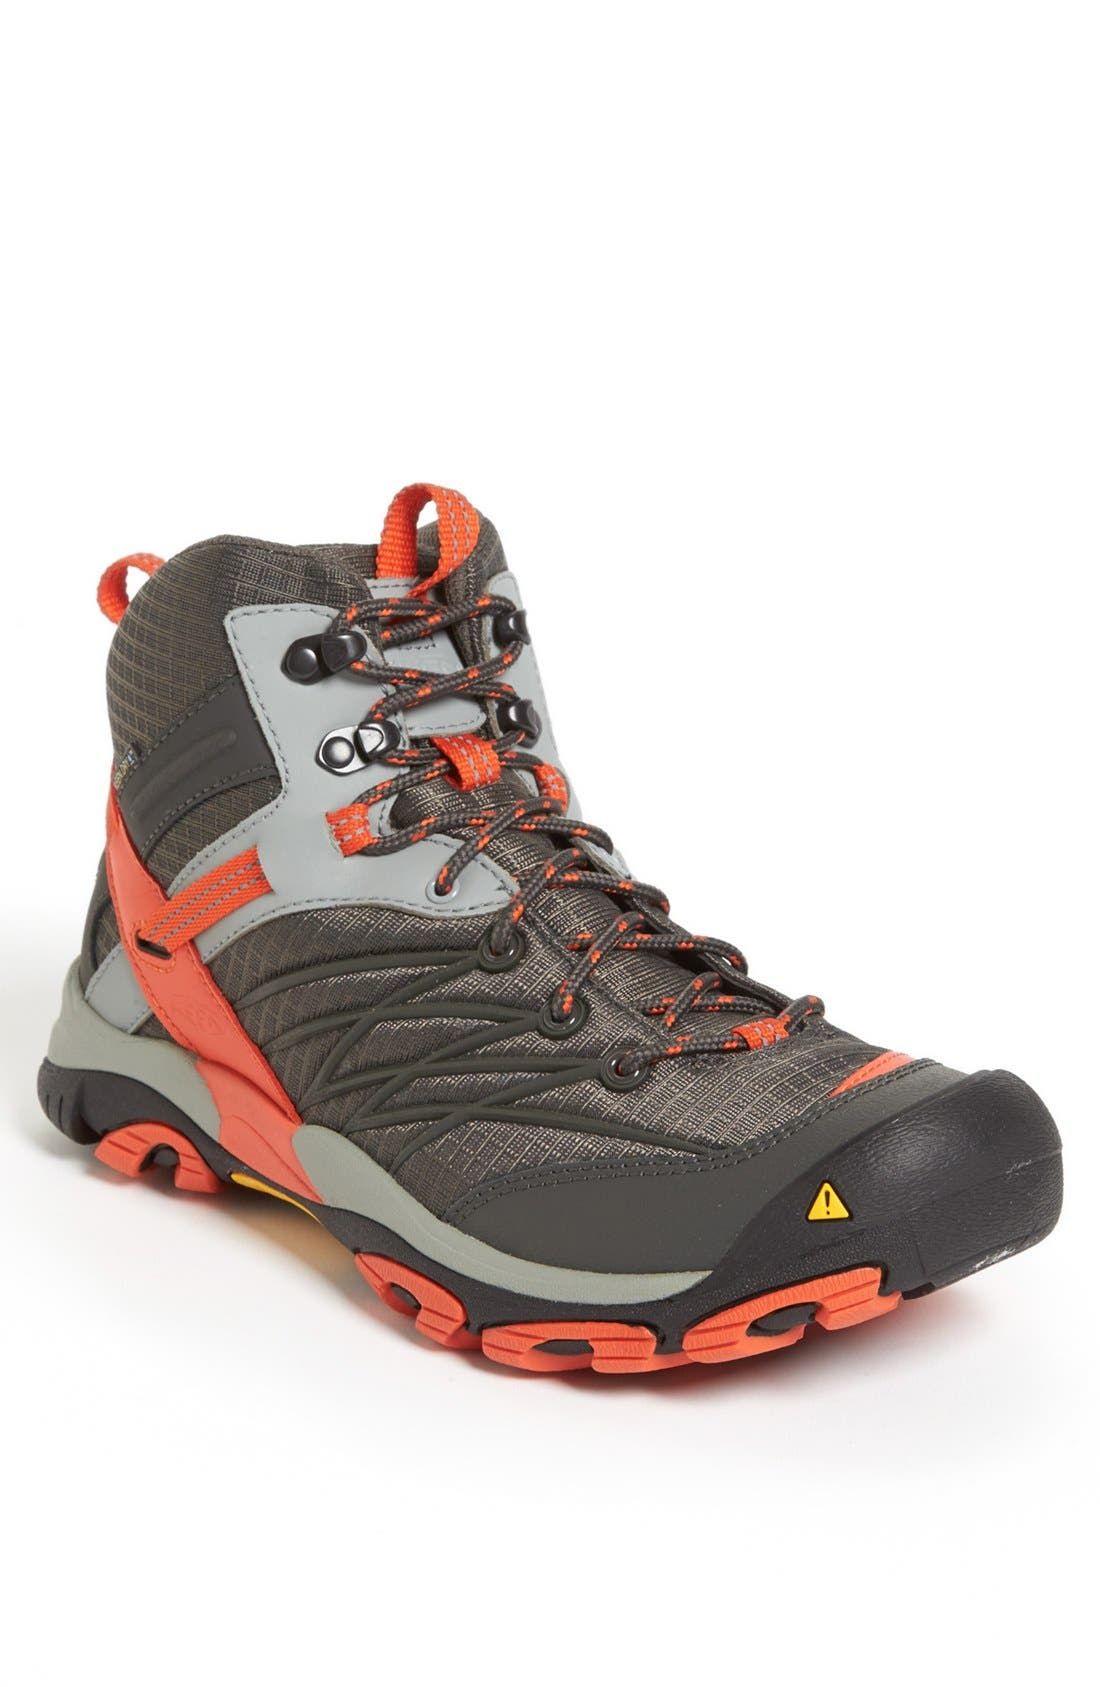 Alternate Image 1 Selected - Keen 'Marshall Mid WP' Hiking Boot (Men)